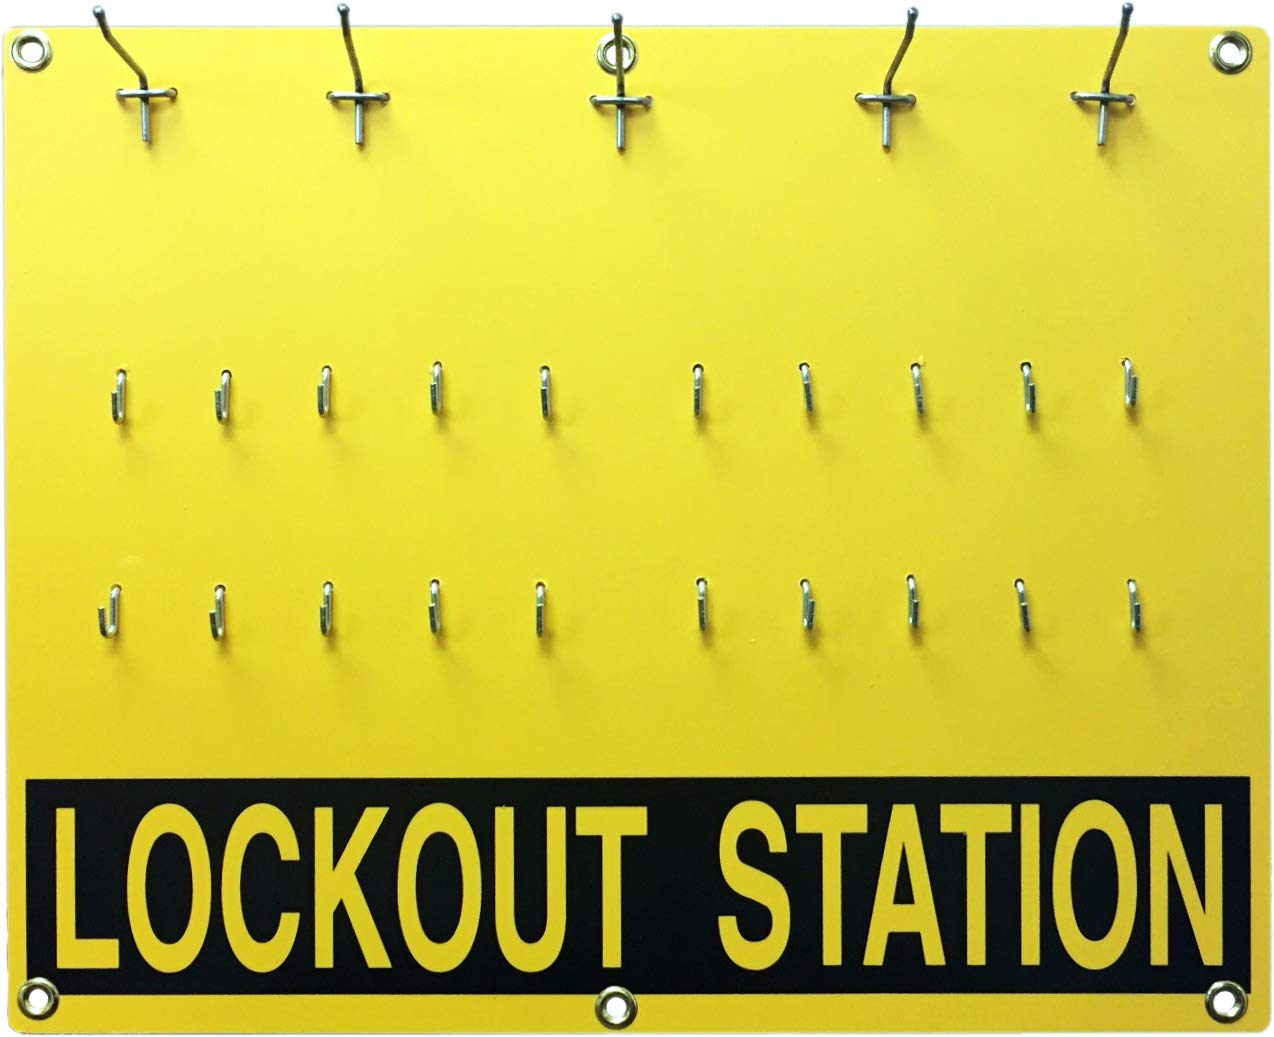 LEM Products, Inc, Lockout Tagout Station #LLOS11, unfilled. 20 Lock Capacity. 1 Board per Package, Includes Hooks and Wall spacers. Does not Include Locks or Tags.